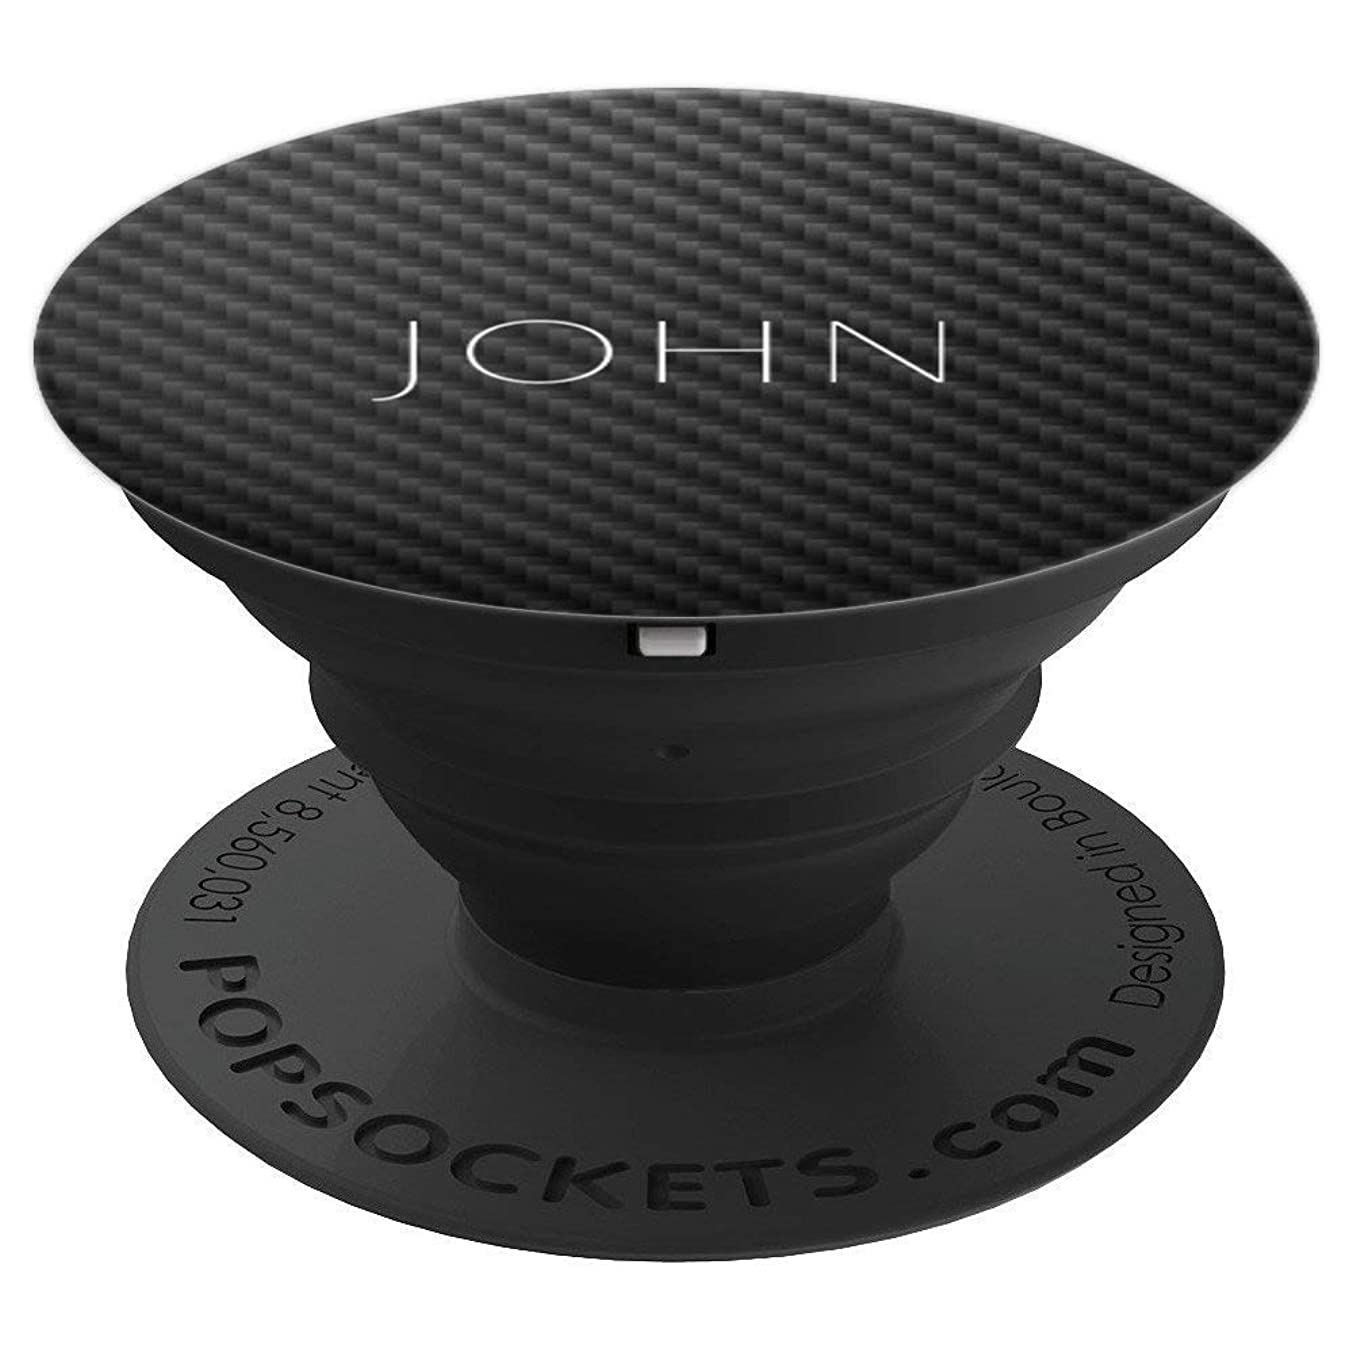 John Name Personalized Birthday Men Boys Car Carbon Gift - PopSockets Grip and Stand for Phones and Tablets